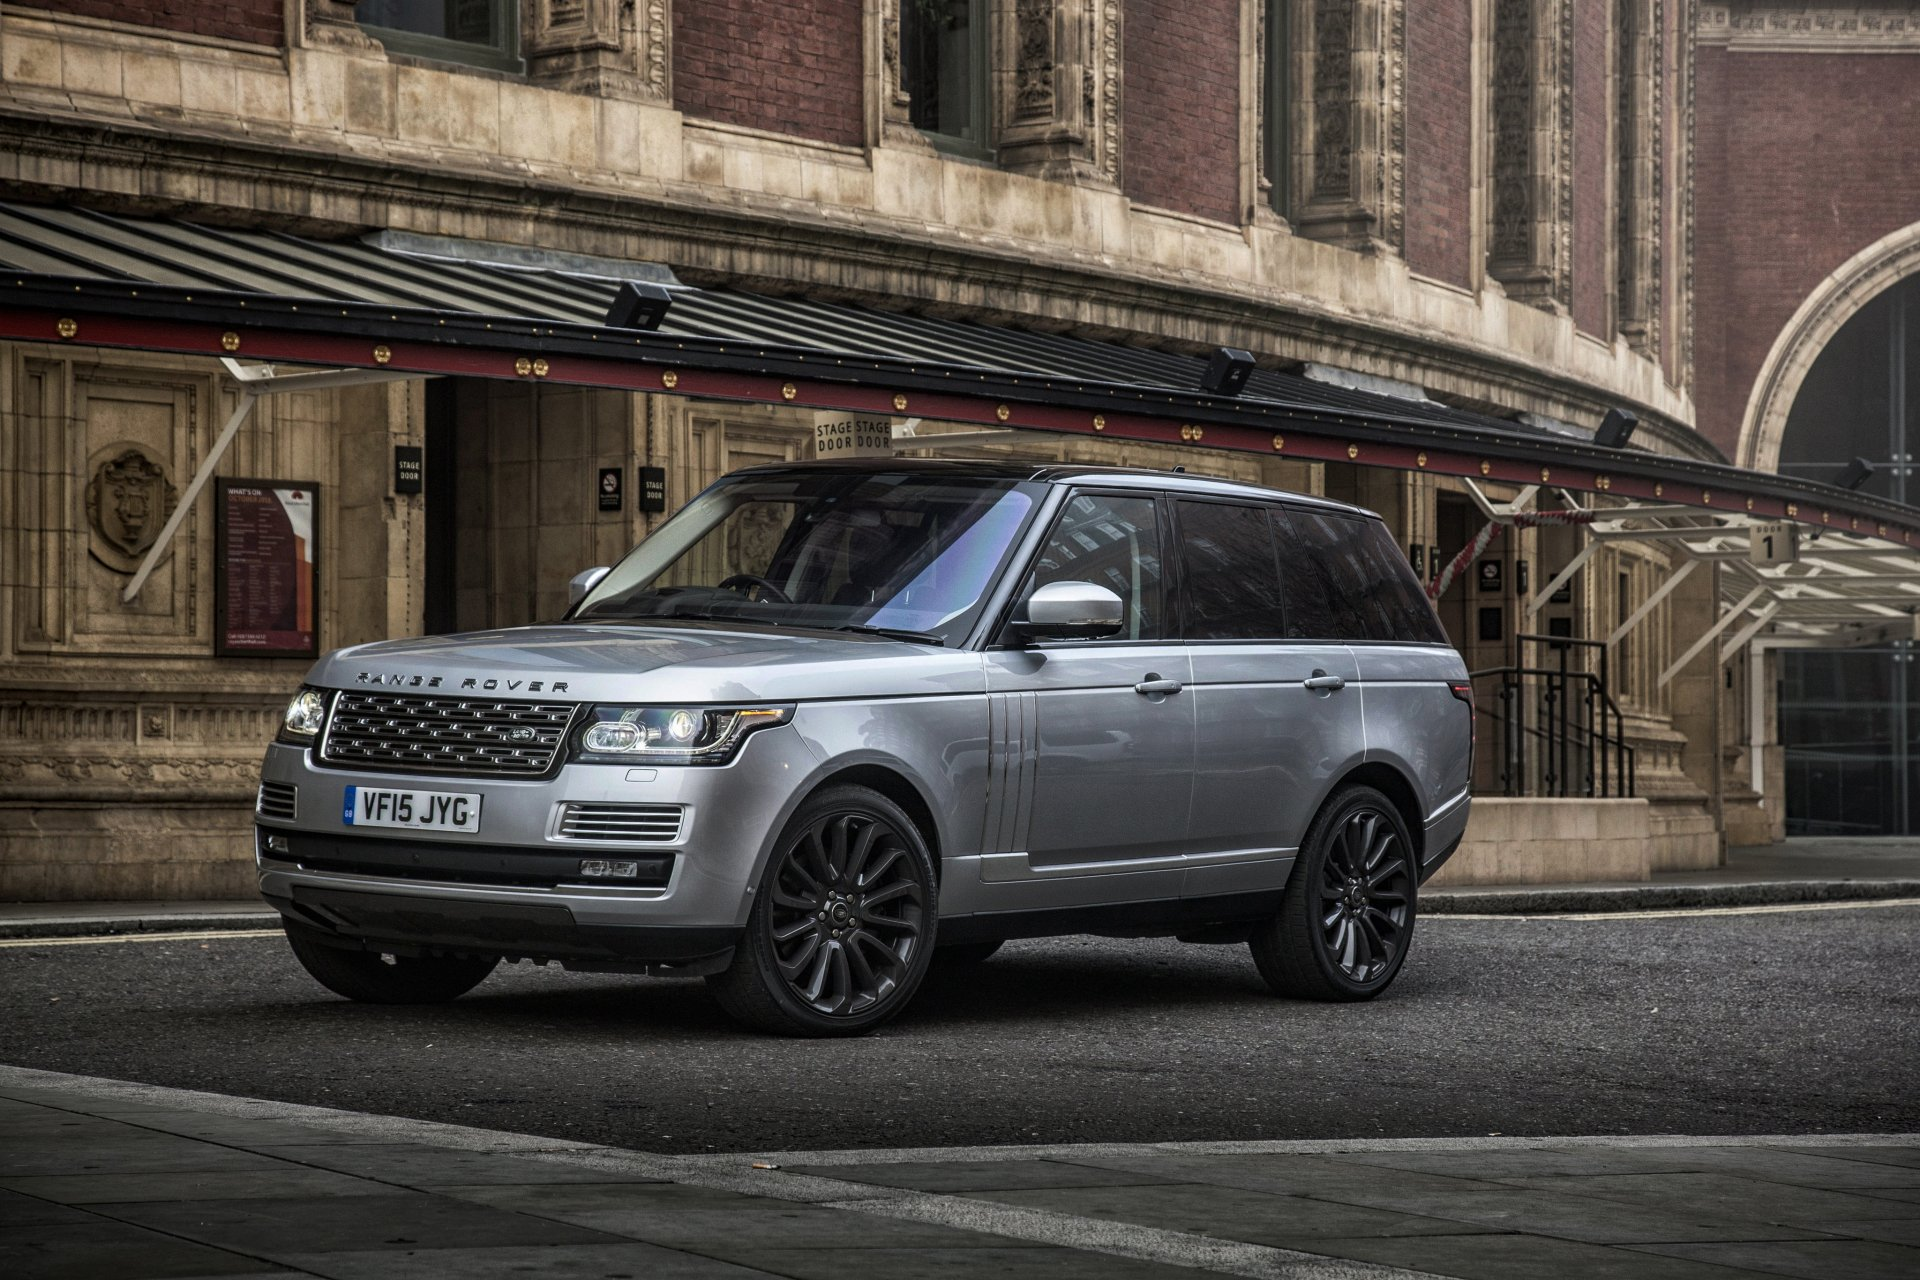 23 4K Ultra HD Range Rover Wallpapers